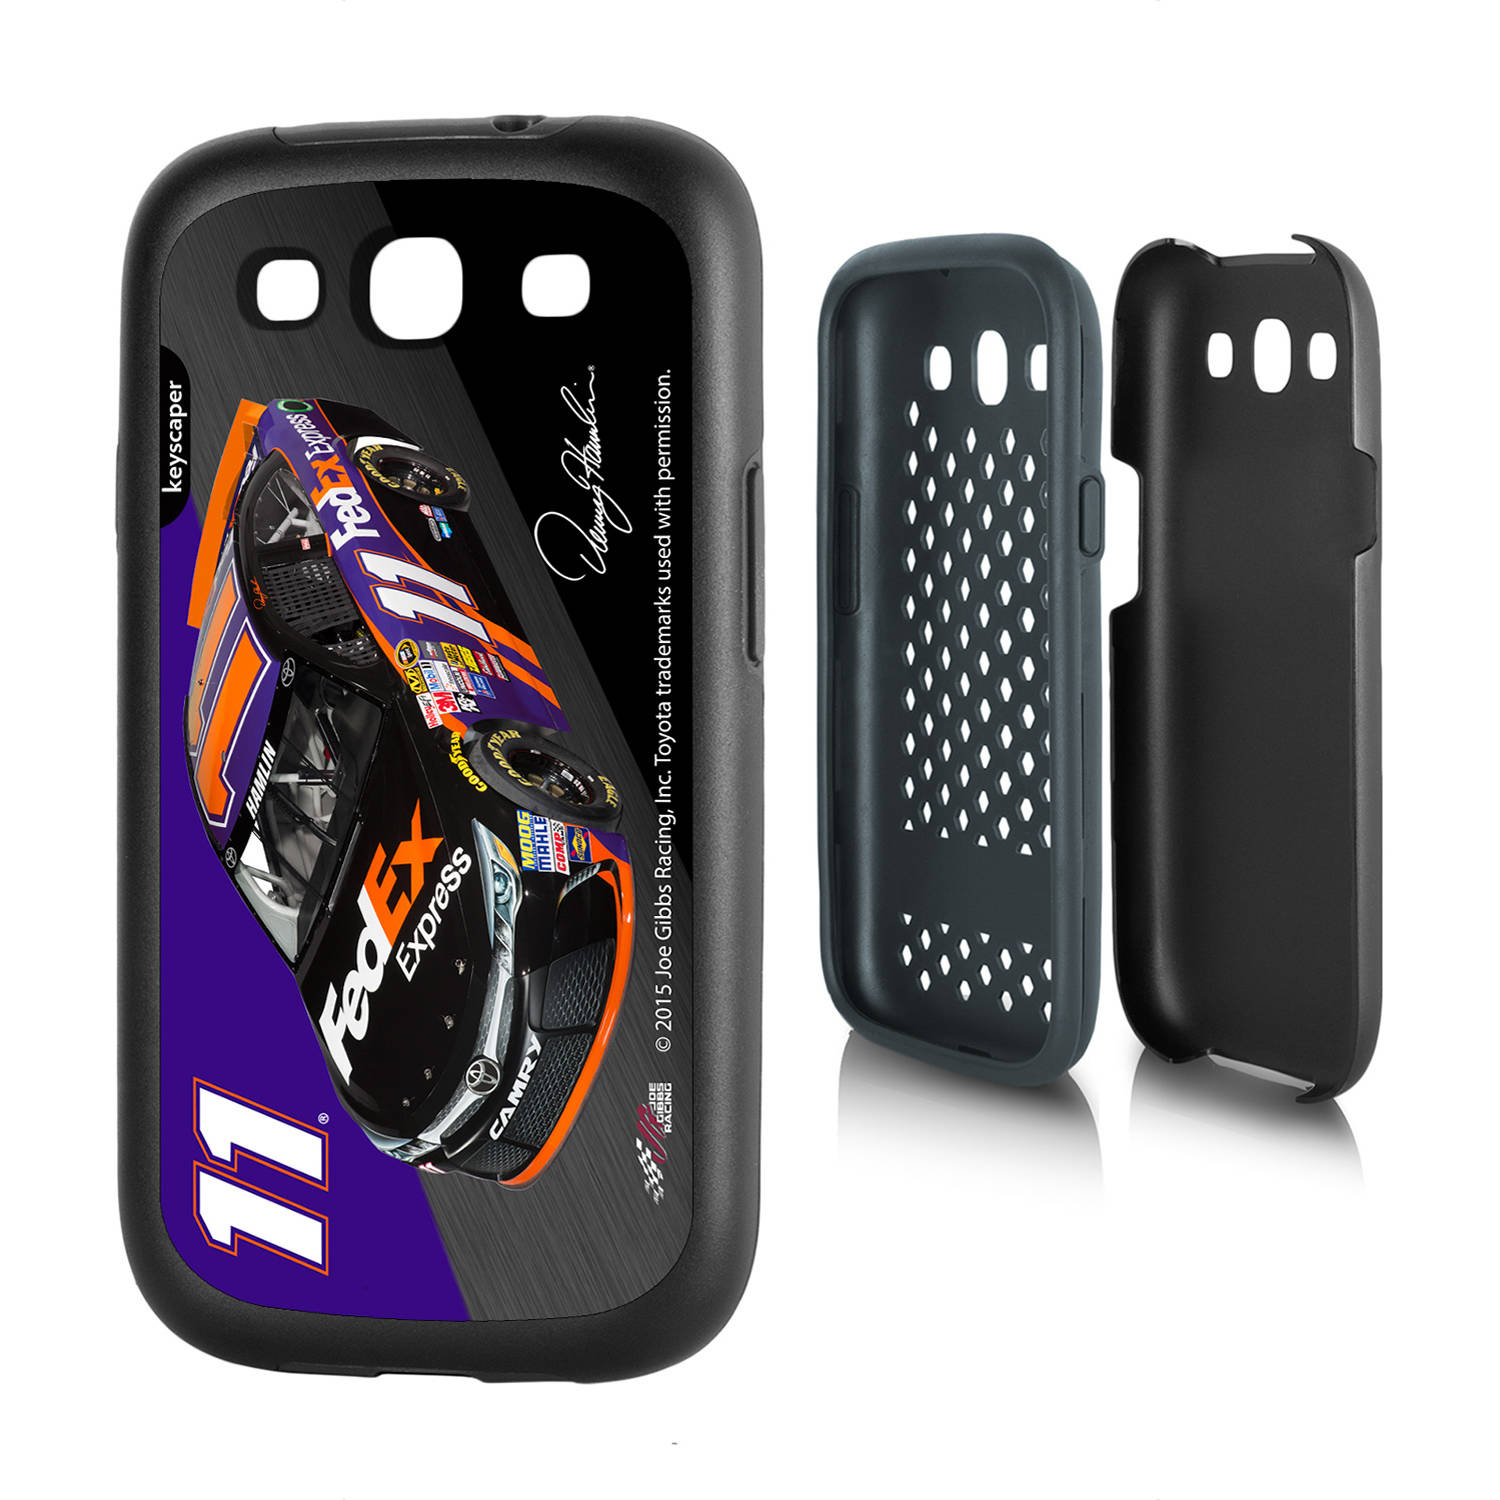 Denny Hamlin #11 Galaxy S3 Rugged Case